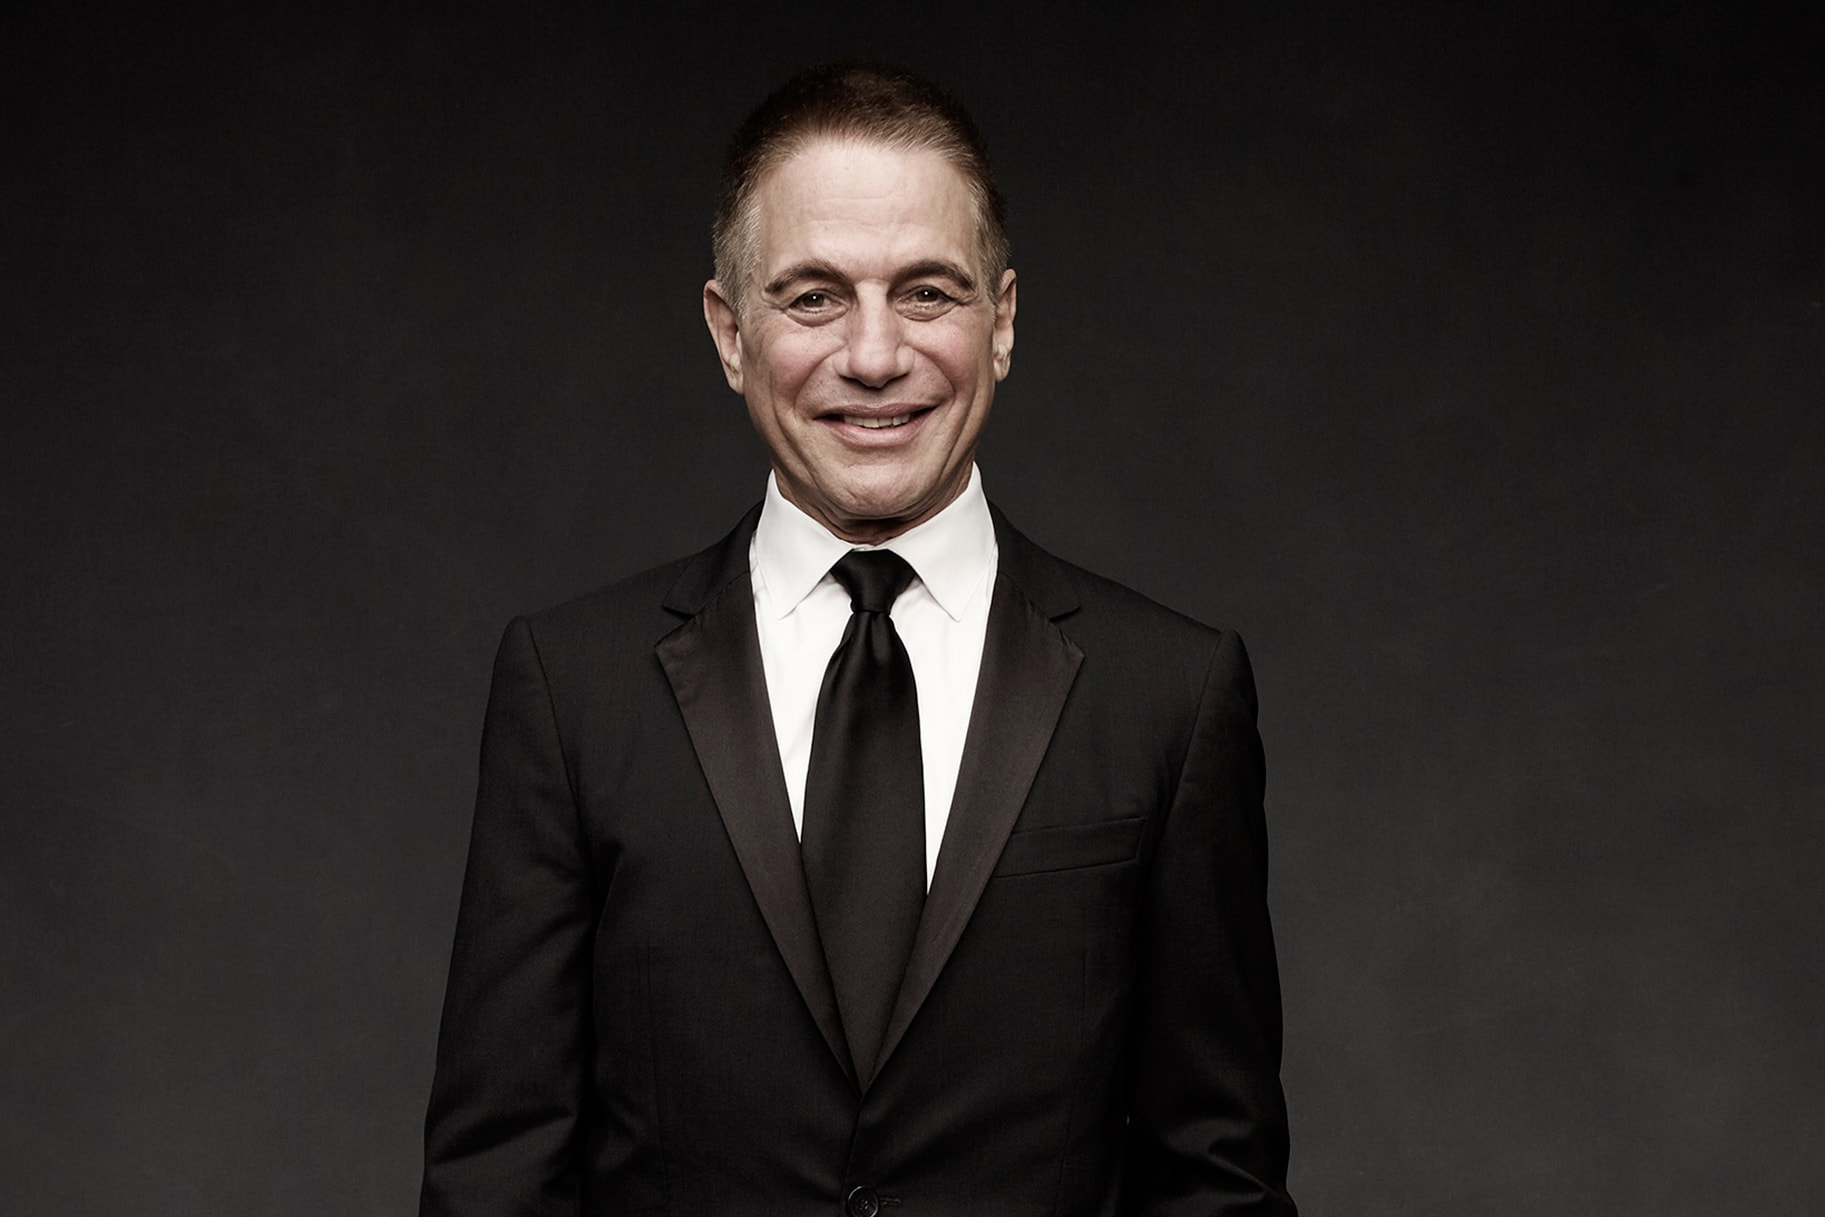 Tony Danza Desktop wallpaper